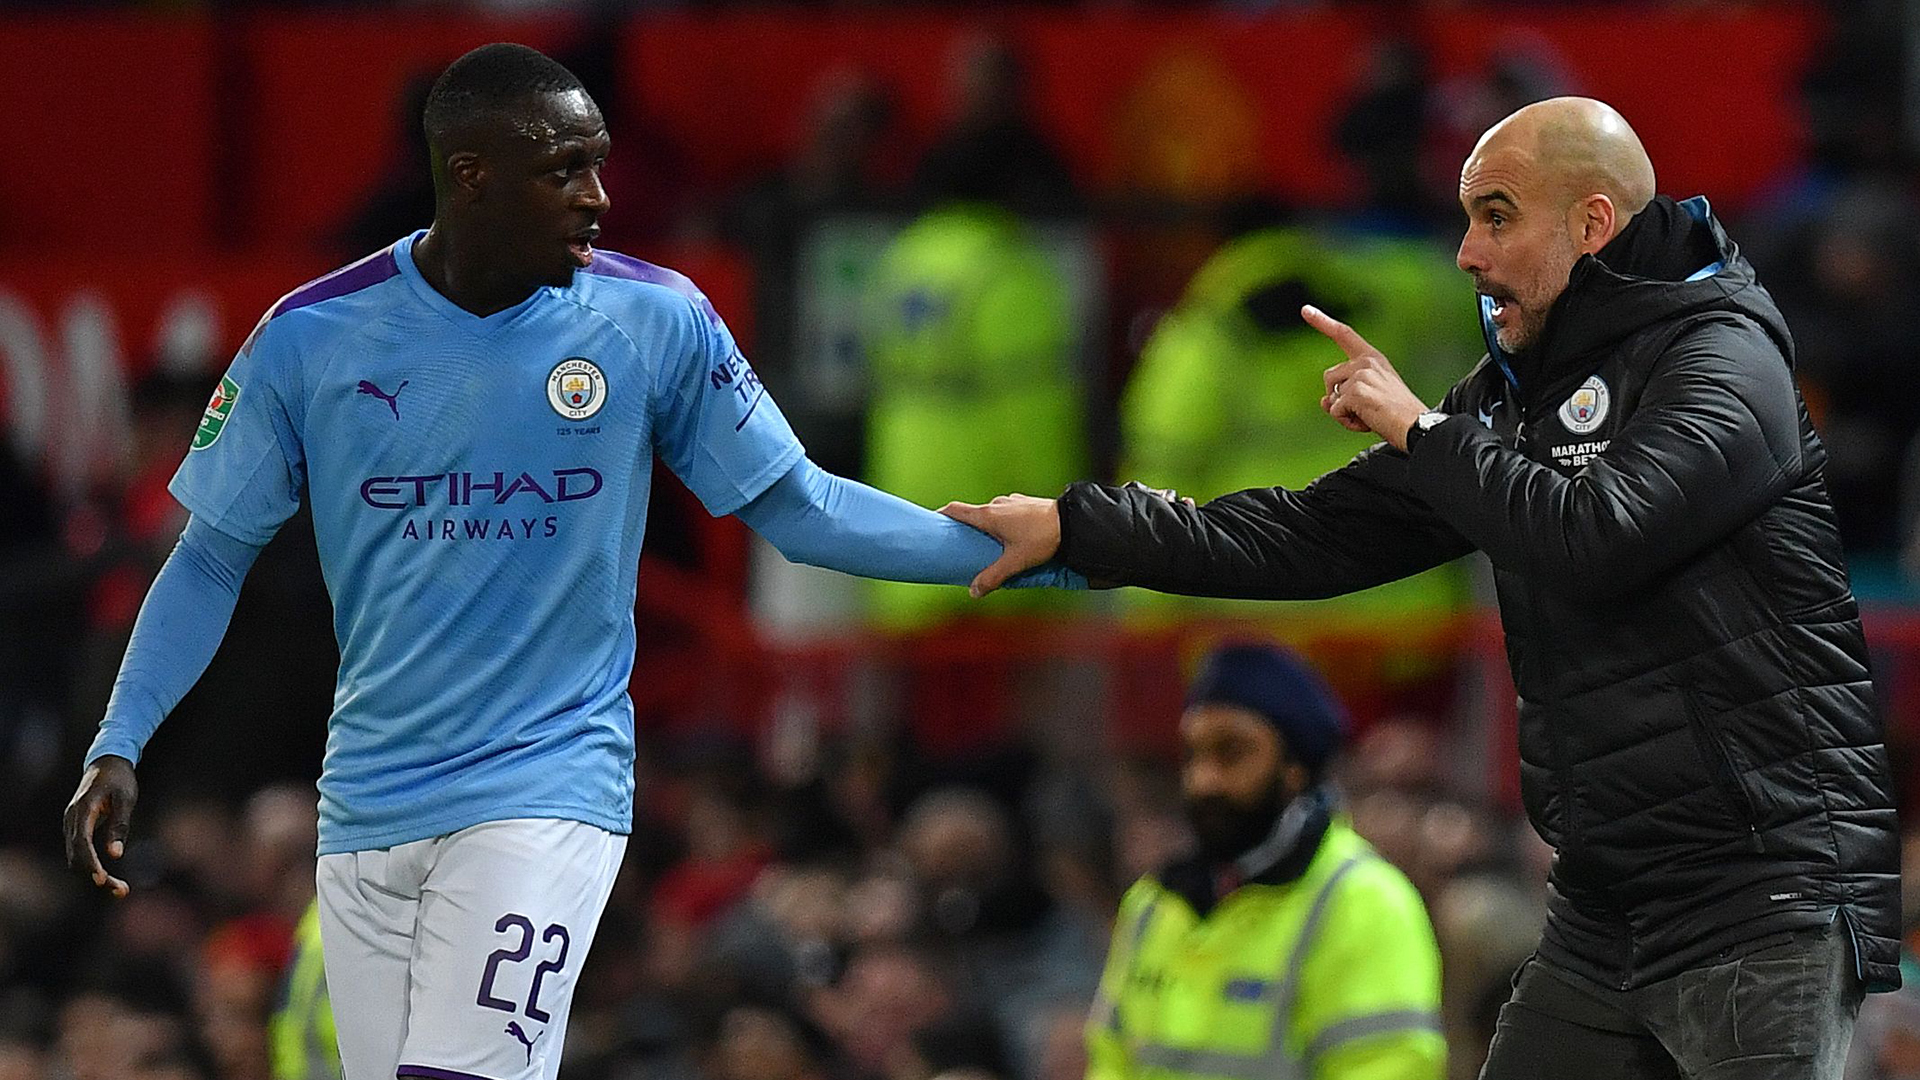 Mendy happy to know he is missed by Man City boss Guardiola